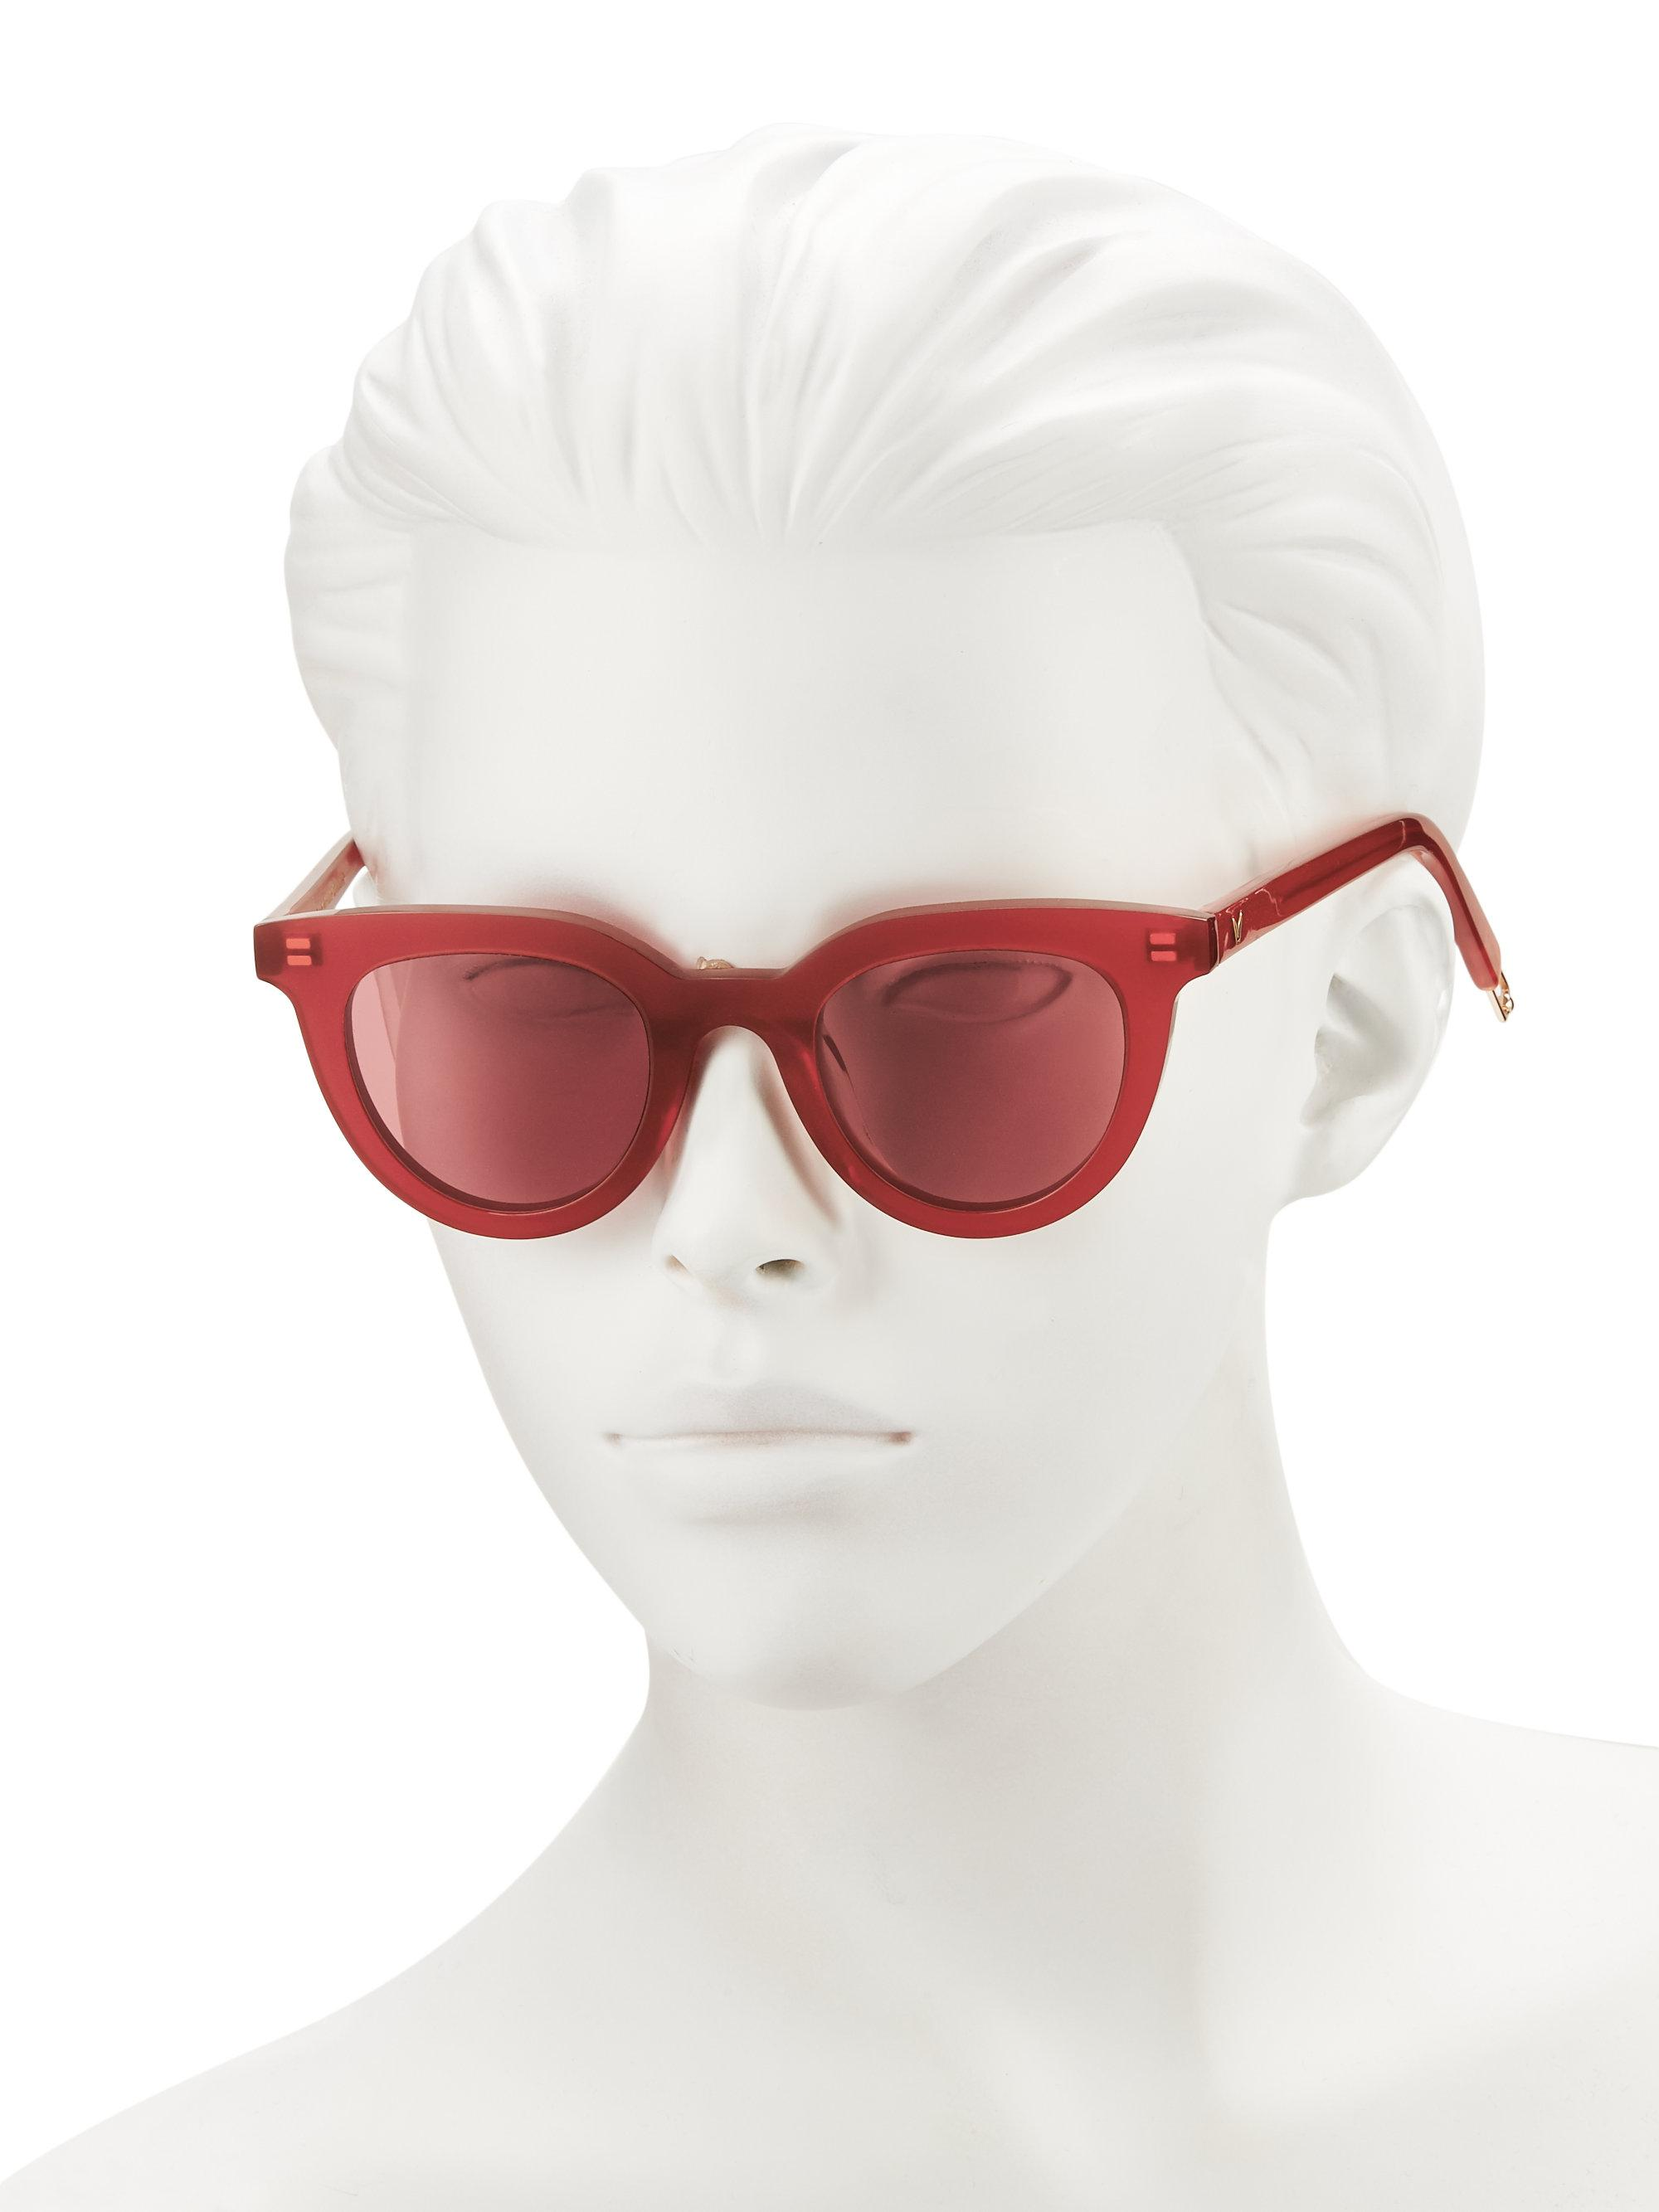 734c221475e Gallery. Previously sold at  Saks Fifth Avenue · Women s Cat Eye Sunglasses  ...